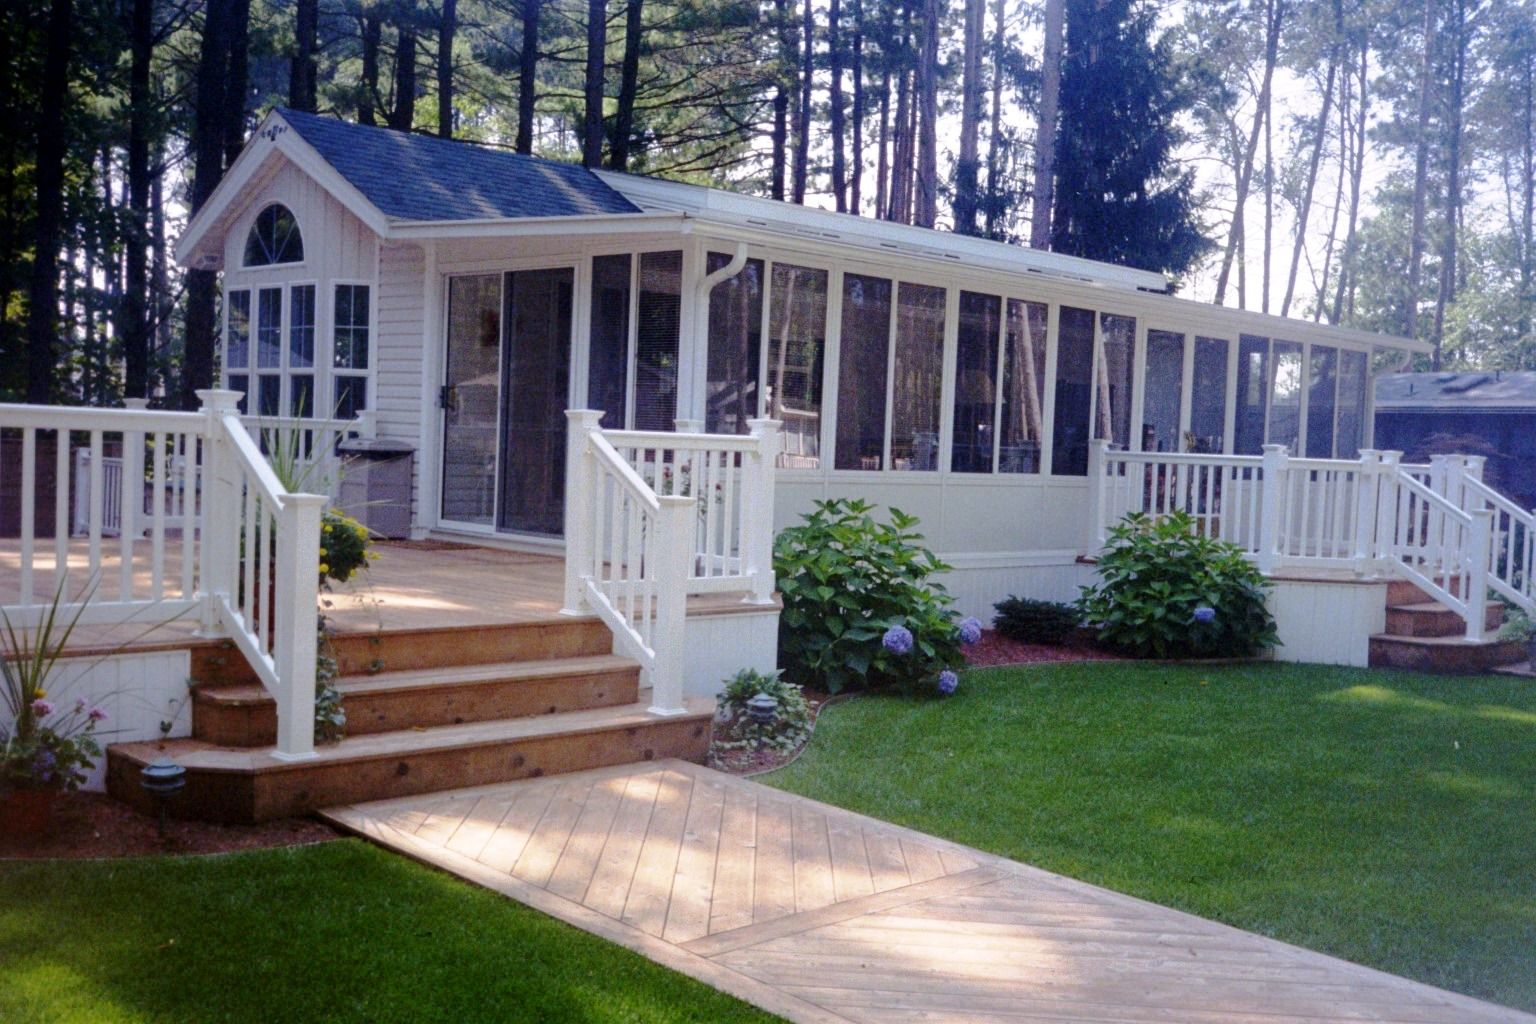 endearing porch designs for mobile homes. Typical Size of Single Wide Mobile HomeMobile Homes Ideas Pin by MinDea Perham on Home  Pinterest Porch